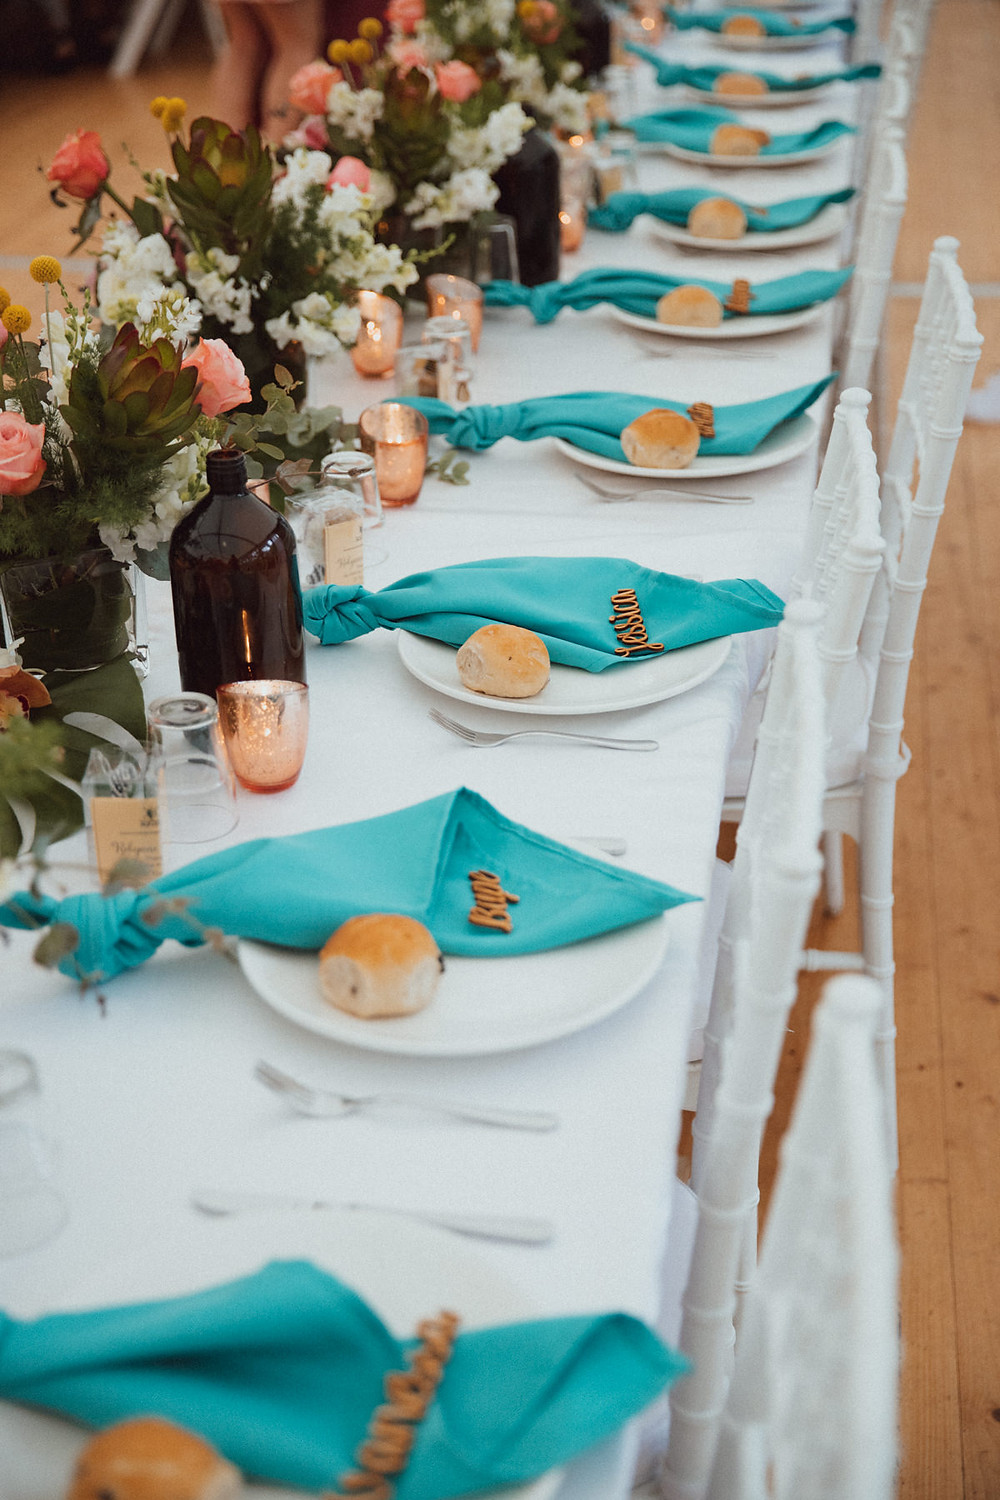 wedding styling with touches of teal